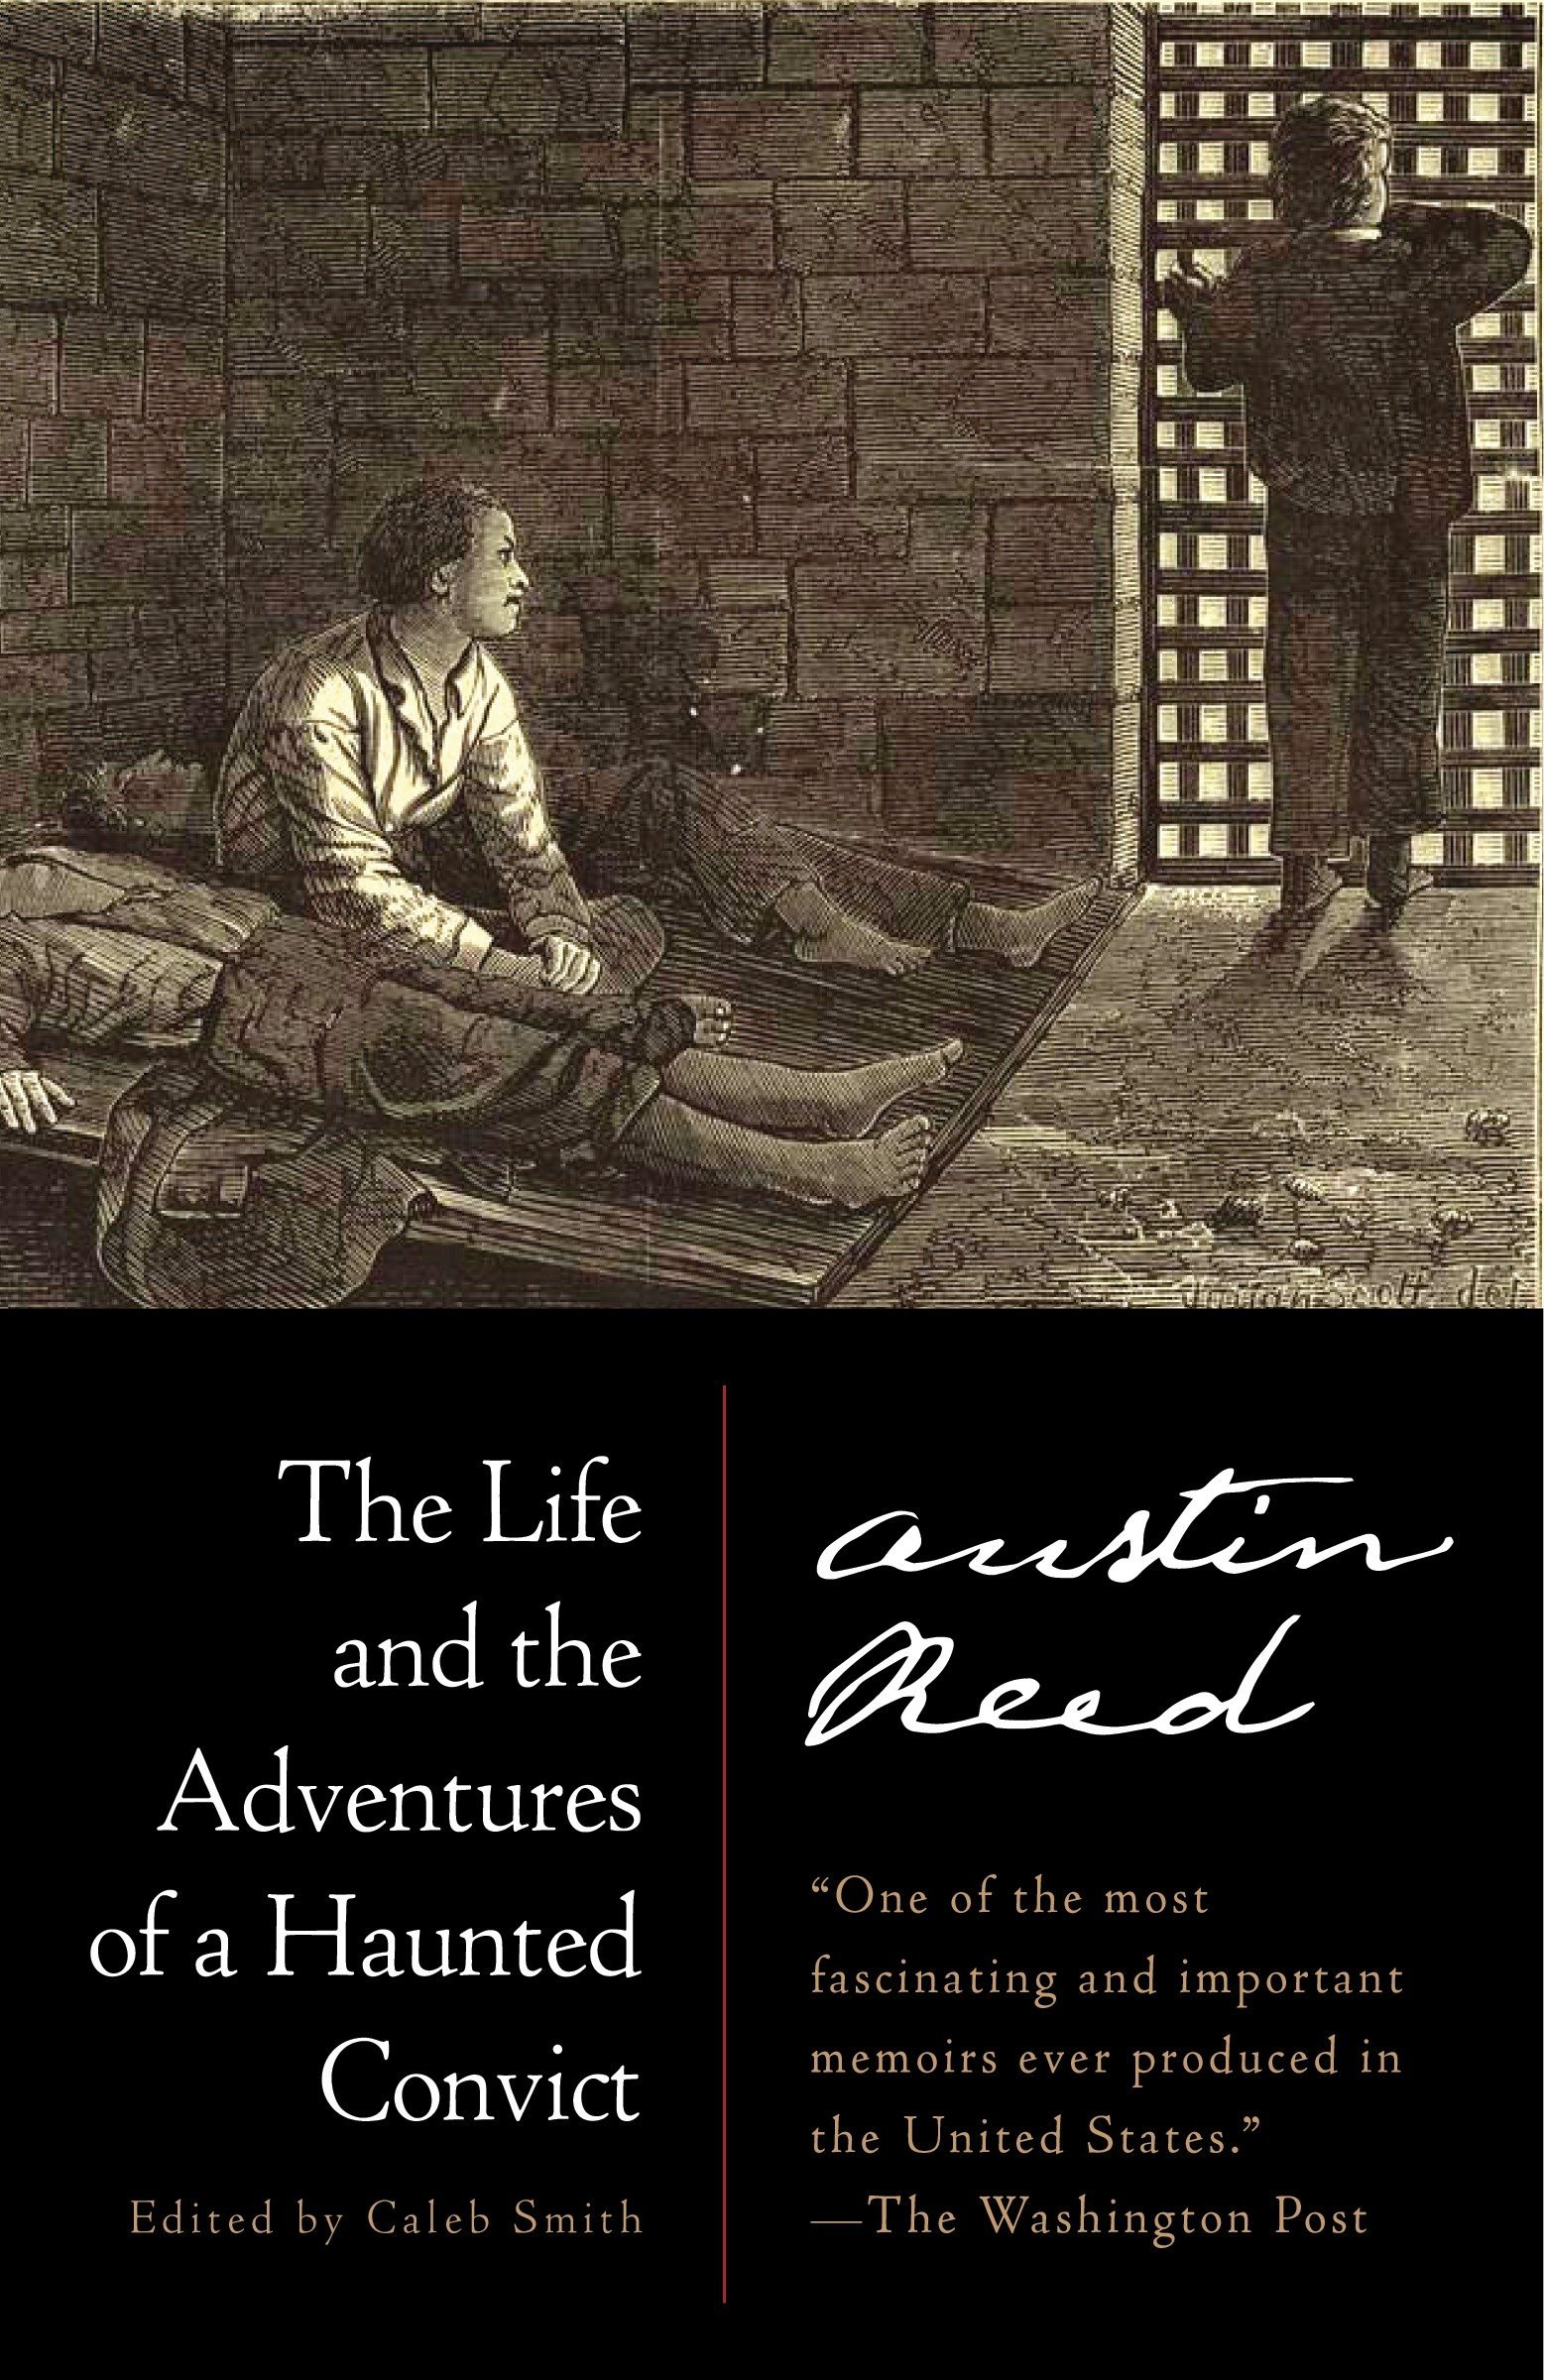 The Life And The Adventures Of A Haunted Convict Reed Austin Smith Caleb Blight David W Stepto Robert B 9780812986914 Amazon Com Books